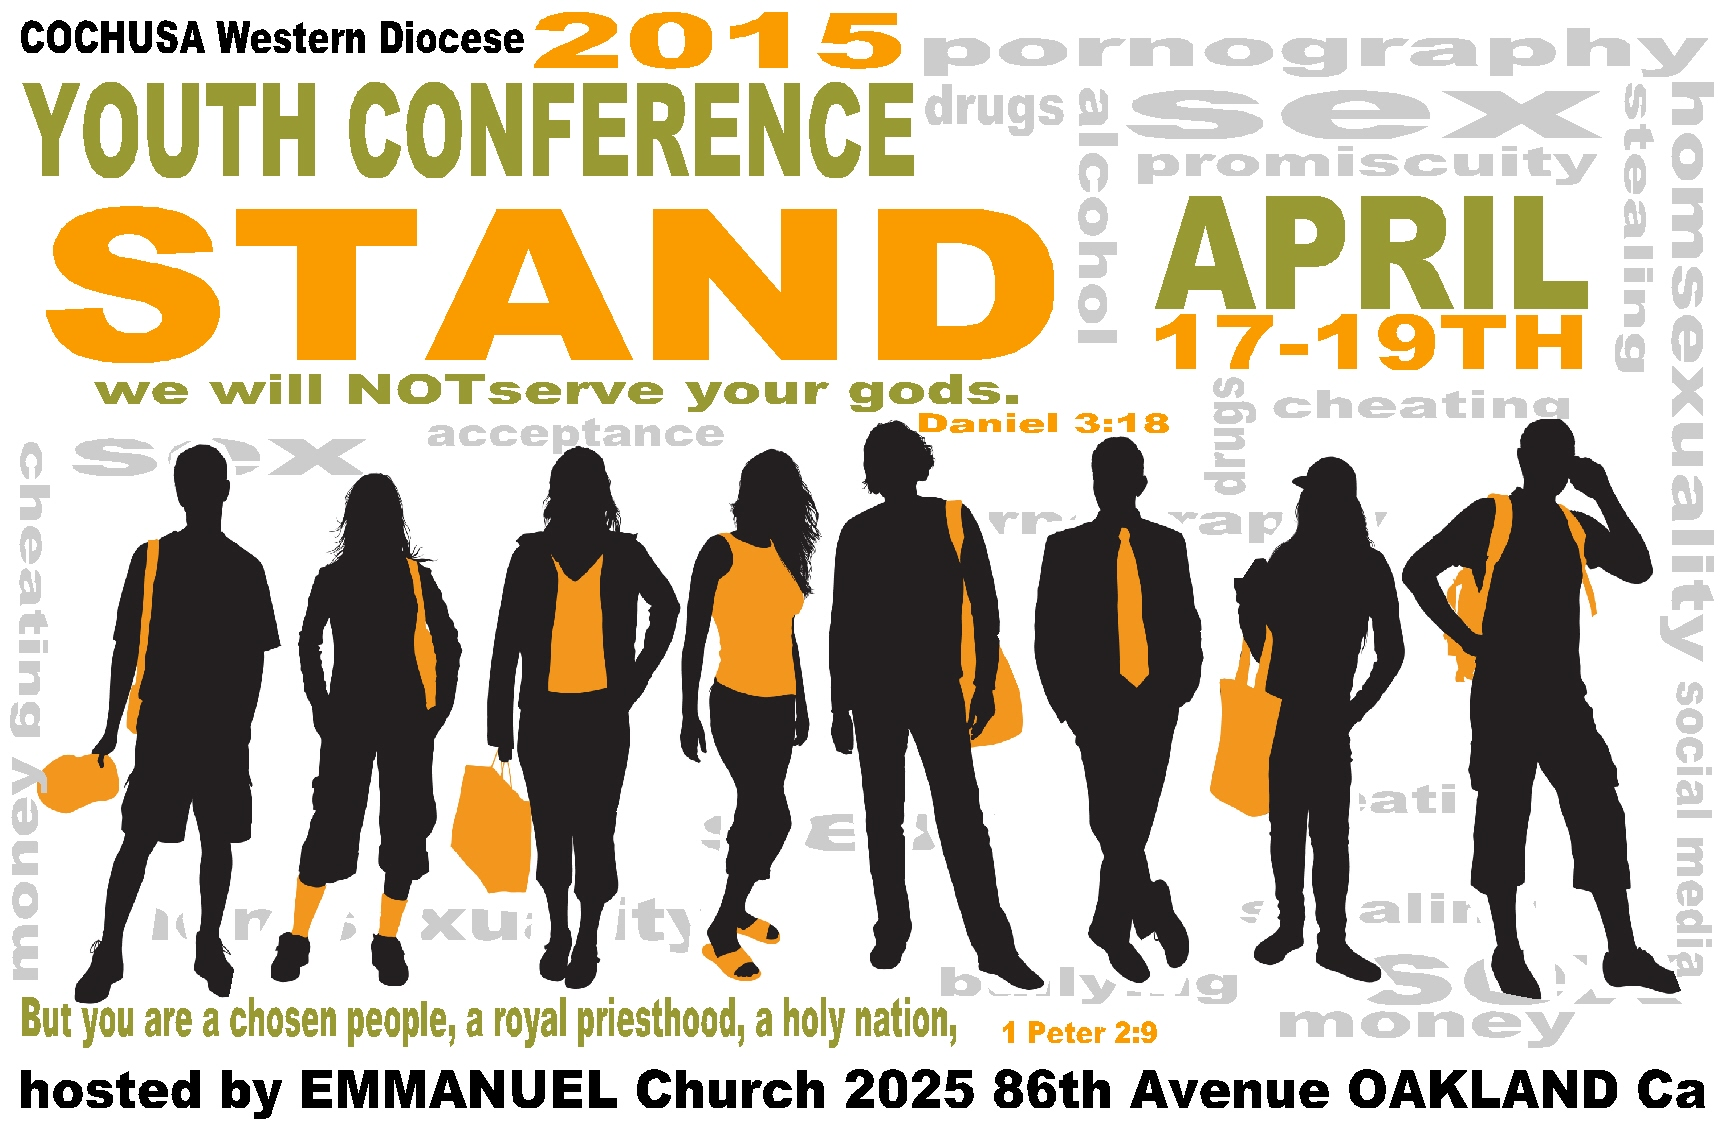 2015-Western-Diocese-youth-conference